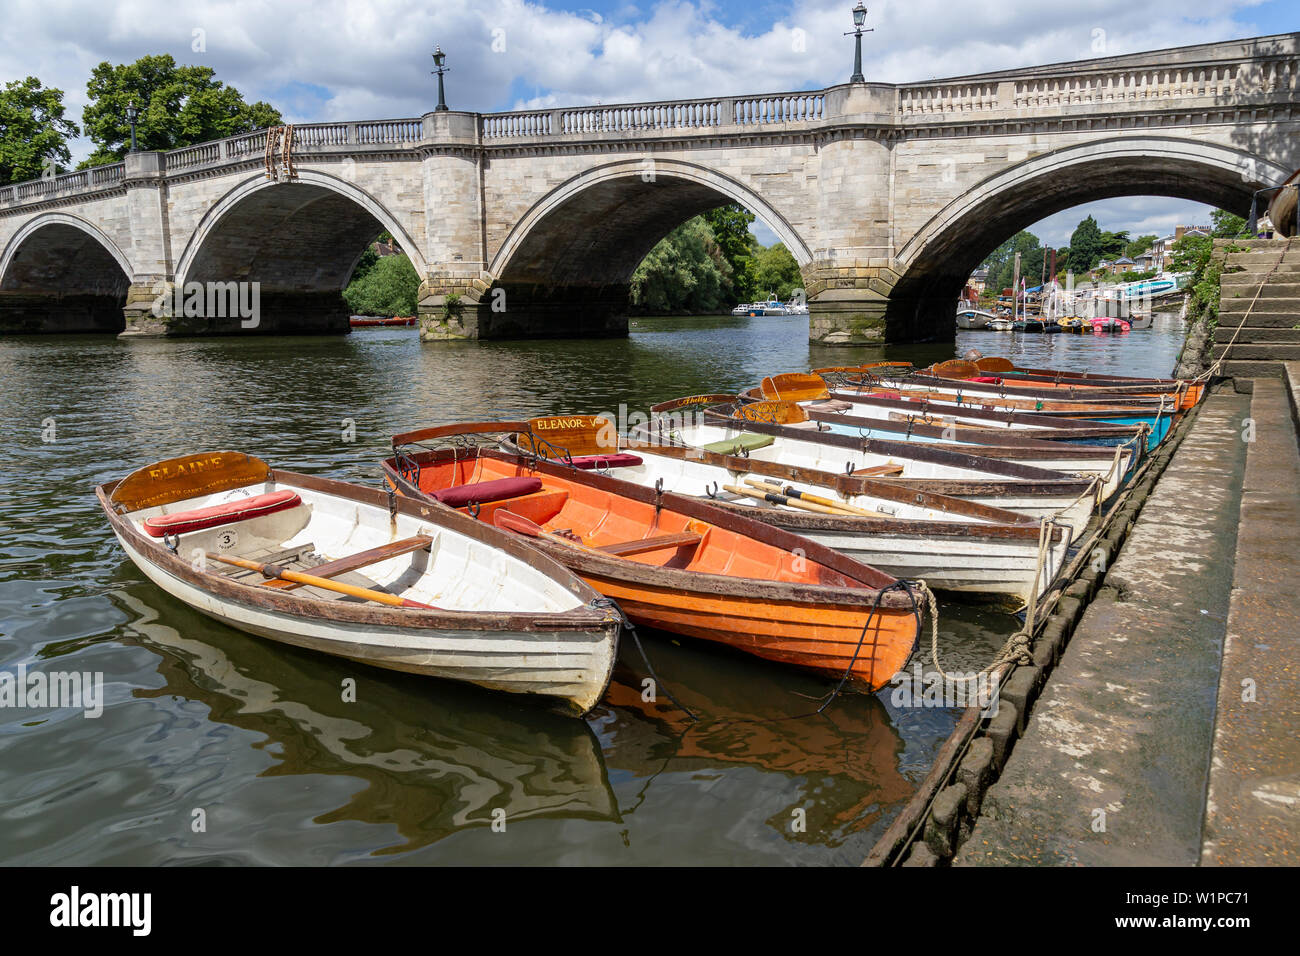 LONDON, UK - JULY 02, 2019. Wooden boats of Richmond Bridge Boat Hire company moored on the River Thames, Richmond, Surrey, England - Stock Image